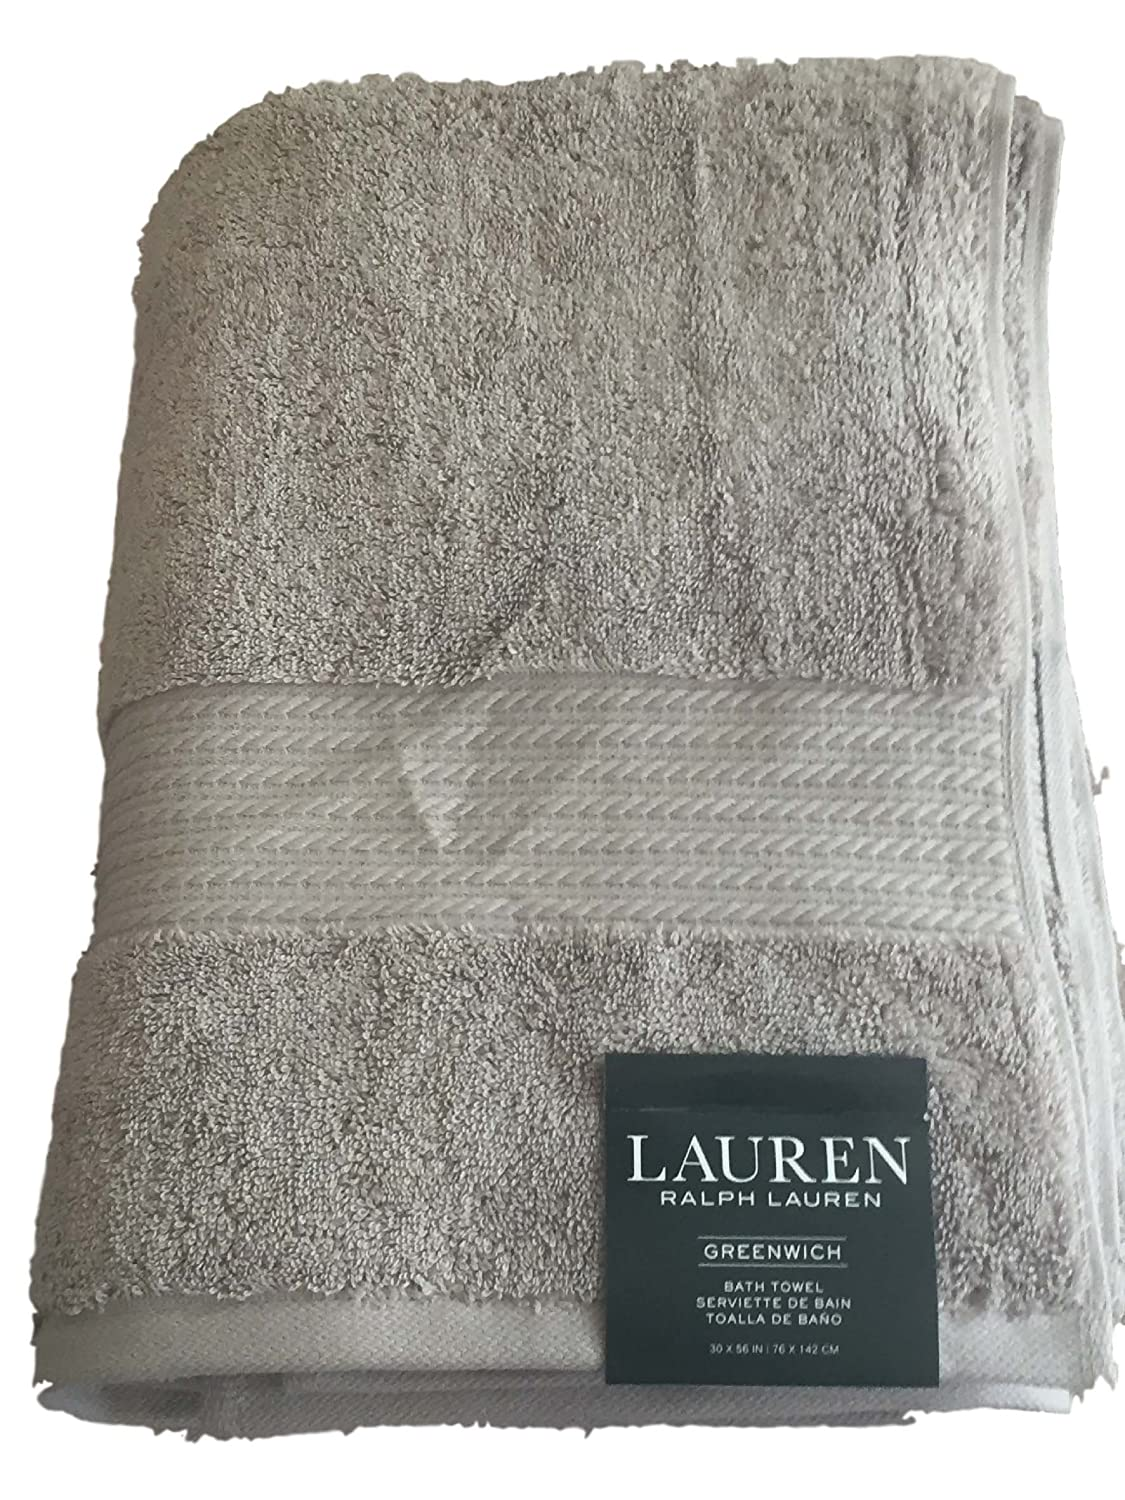 Amazon.com: Lauren Ralph Lauren Greenwich Bath Towel Soft Grey: Home & Kitchen